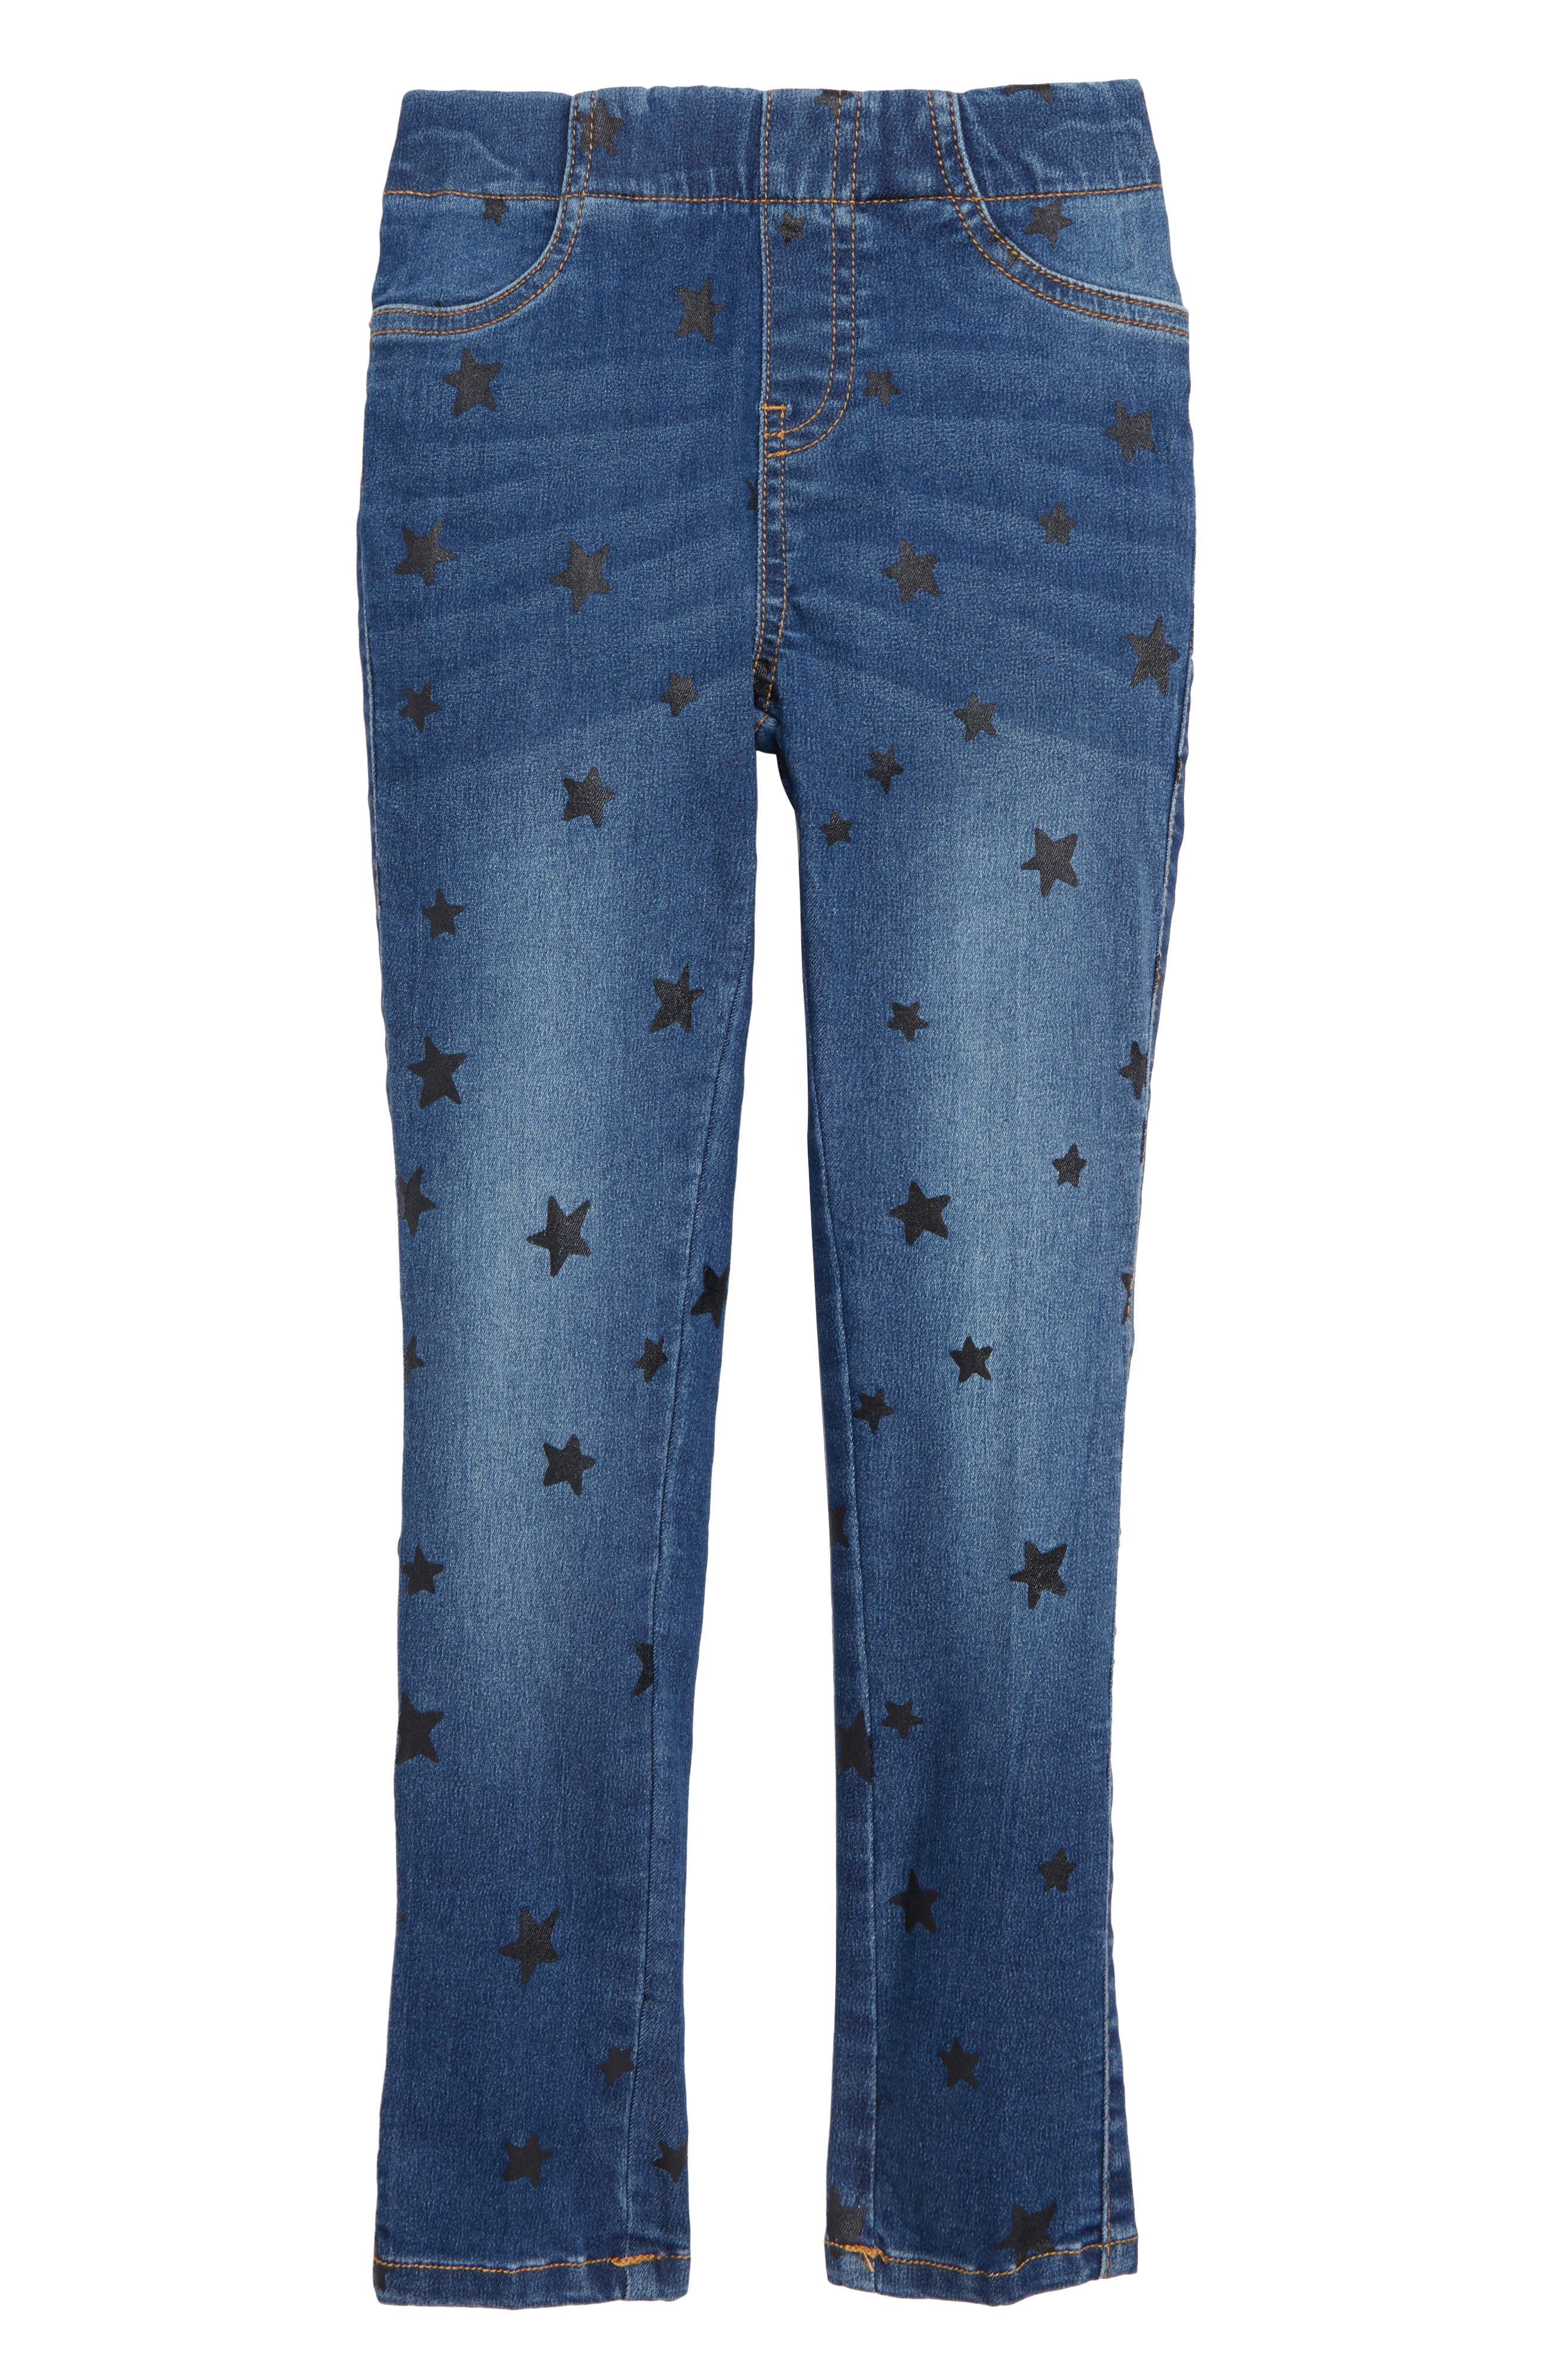 Print Jeggings,                             Main thumbnail 1, color,                             INDIGO WASH STARS